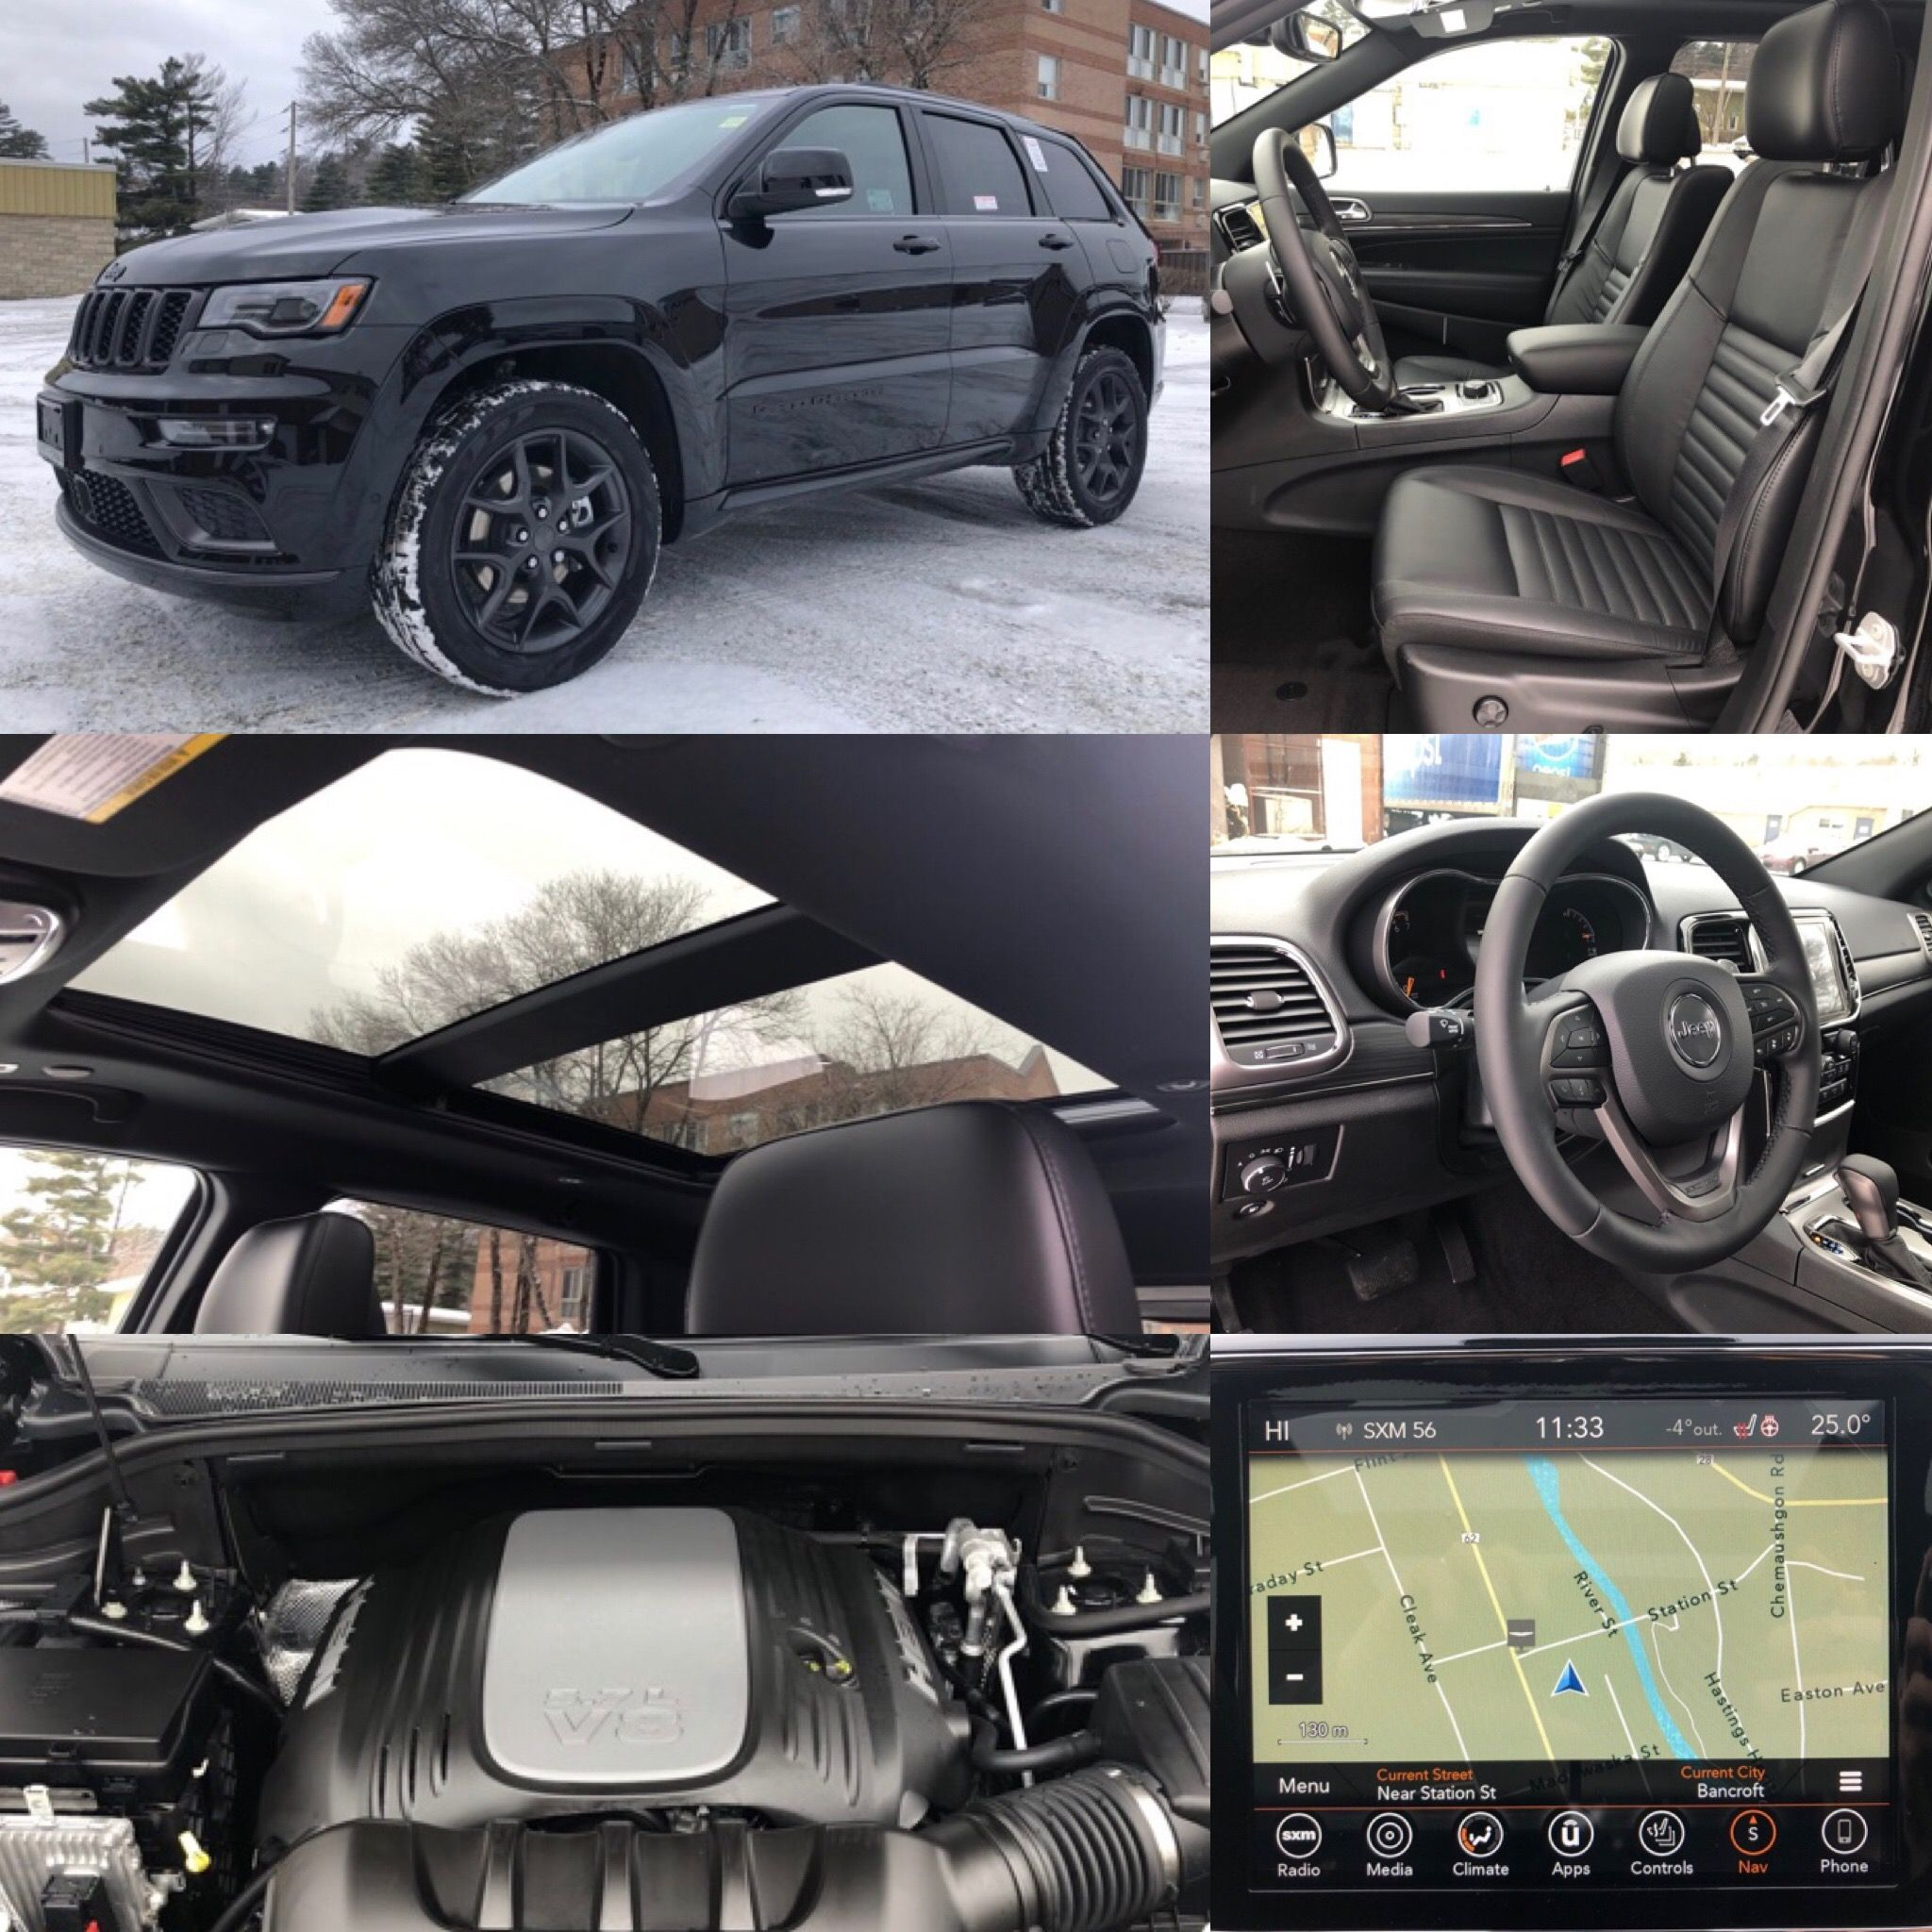 2019 Diamond Black Crystal Jeep Grand Cherokee Limited X 4x4 Hemi Leather Jeep Grand Cherokee Limited Jeep Grand Cherokee Accessories Jeep Grand Cherokee